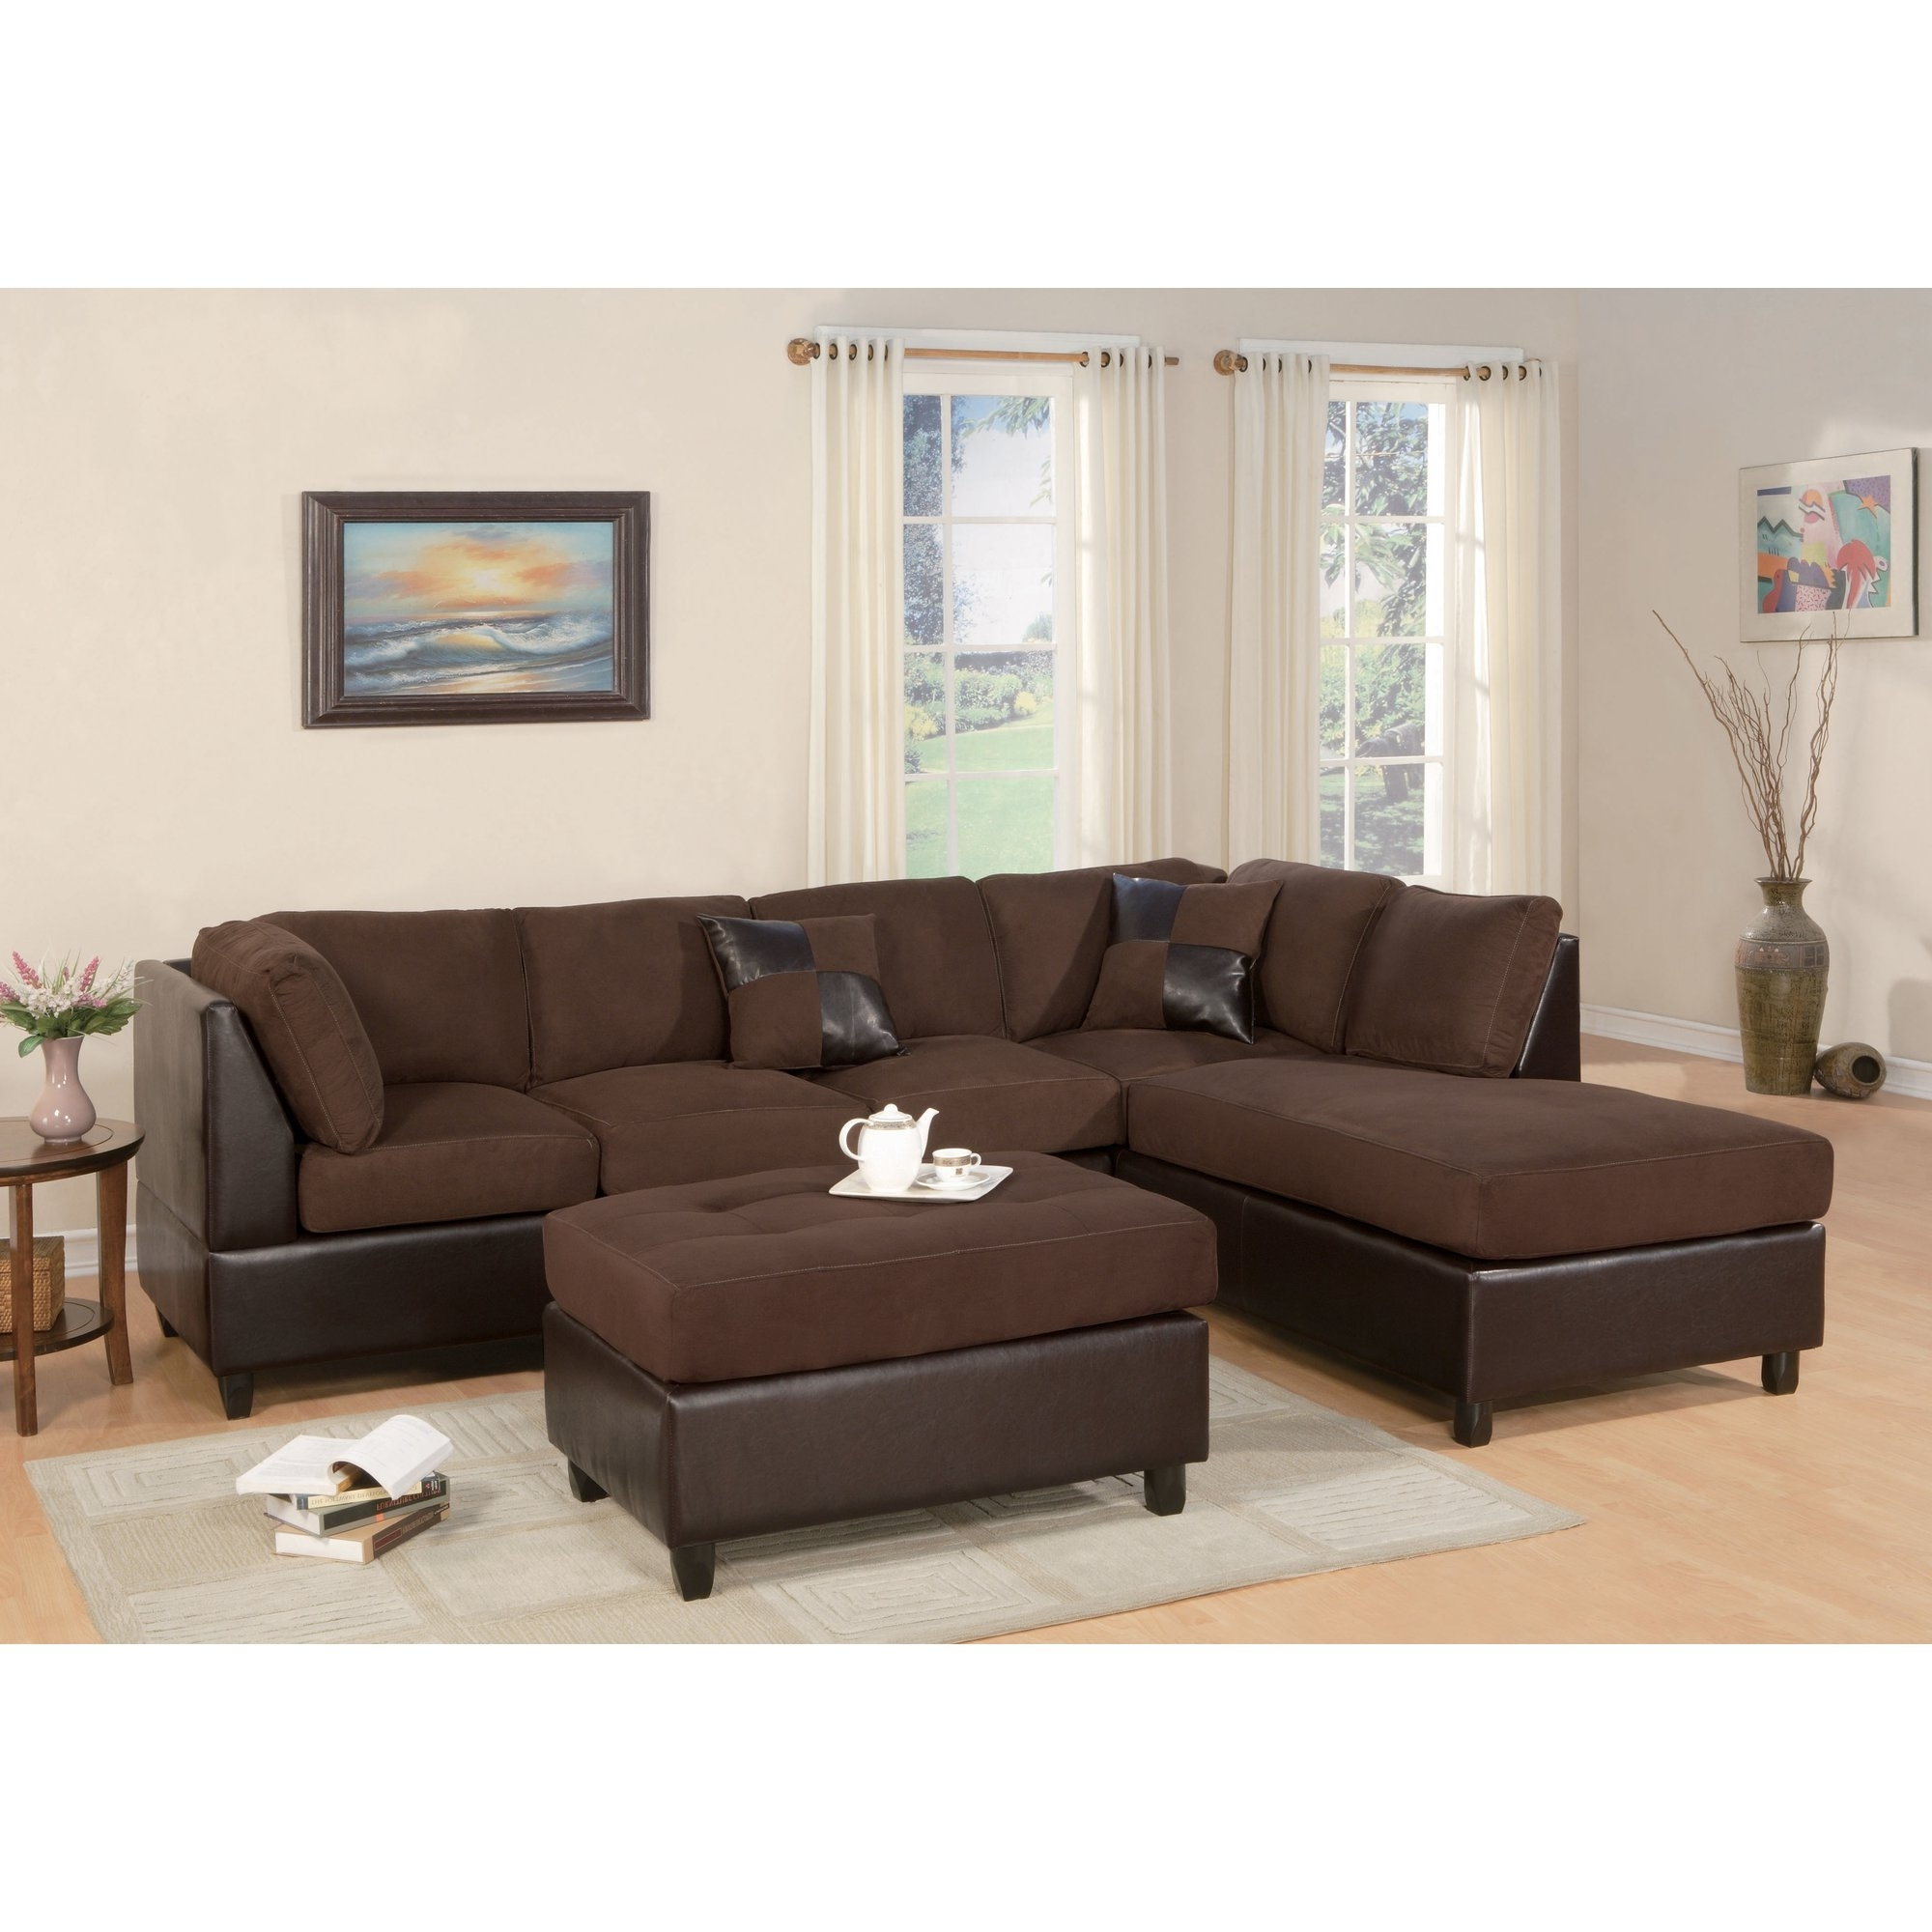 Well Known Hickory Nc Sectional Sofas Inside Living Room Design : Kinghickory Com King Hickory Sectional (View 5 of 20)